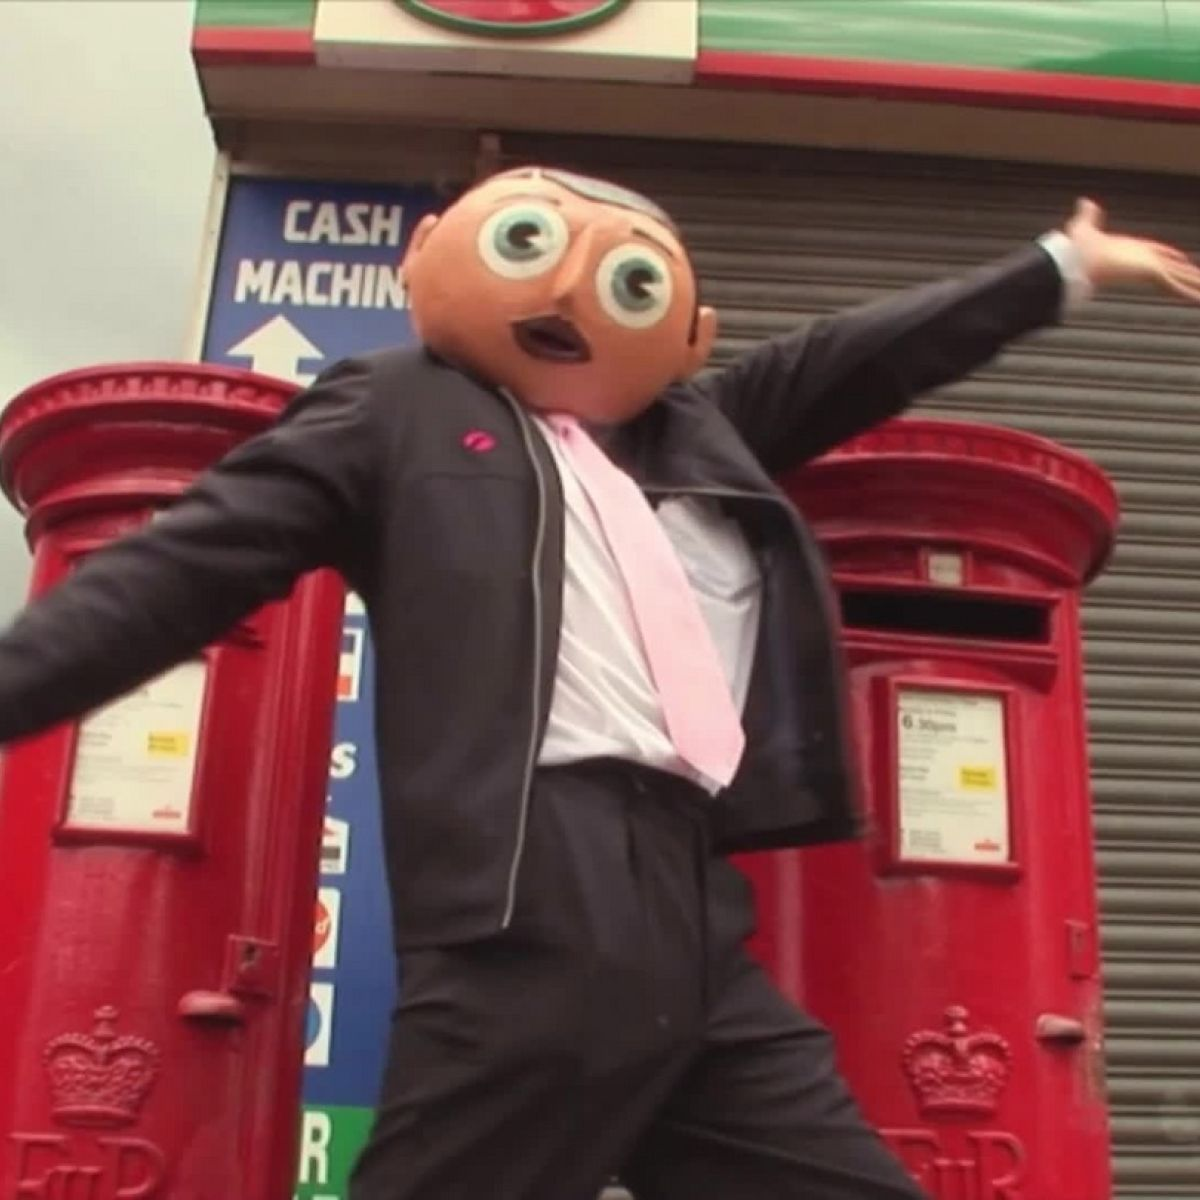 Being Frank: The Chris Sievey Story – A look at the man